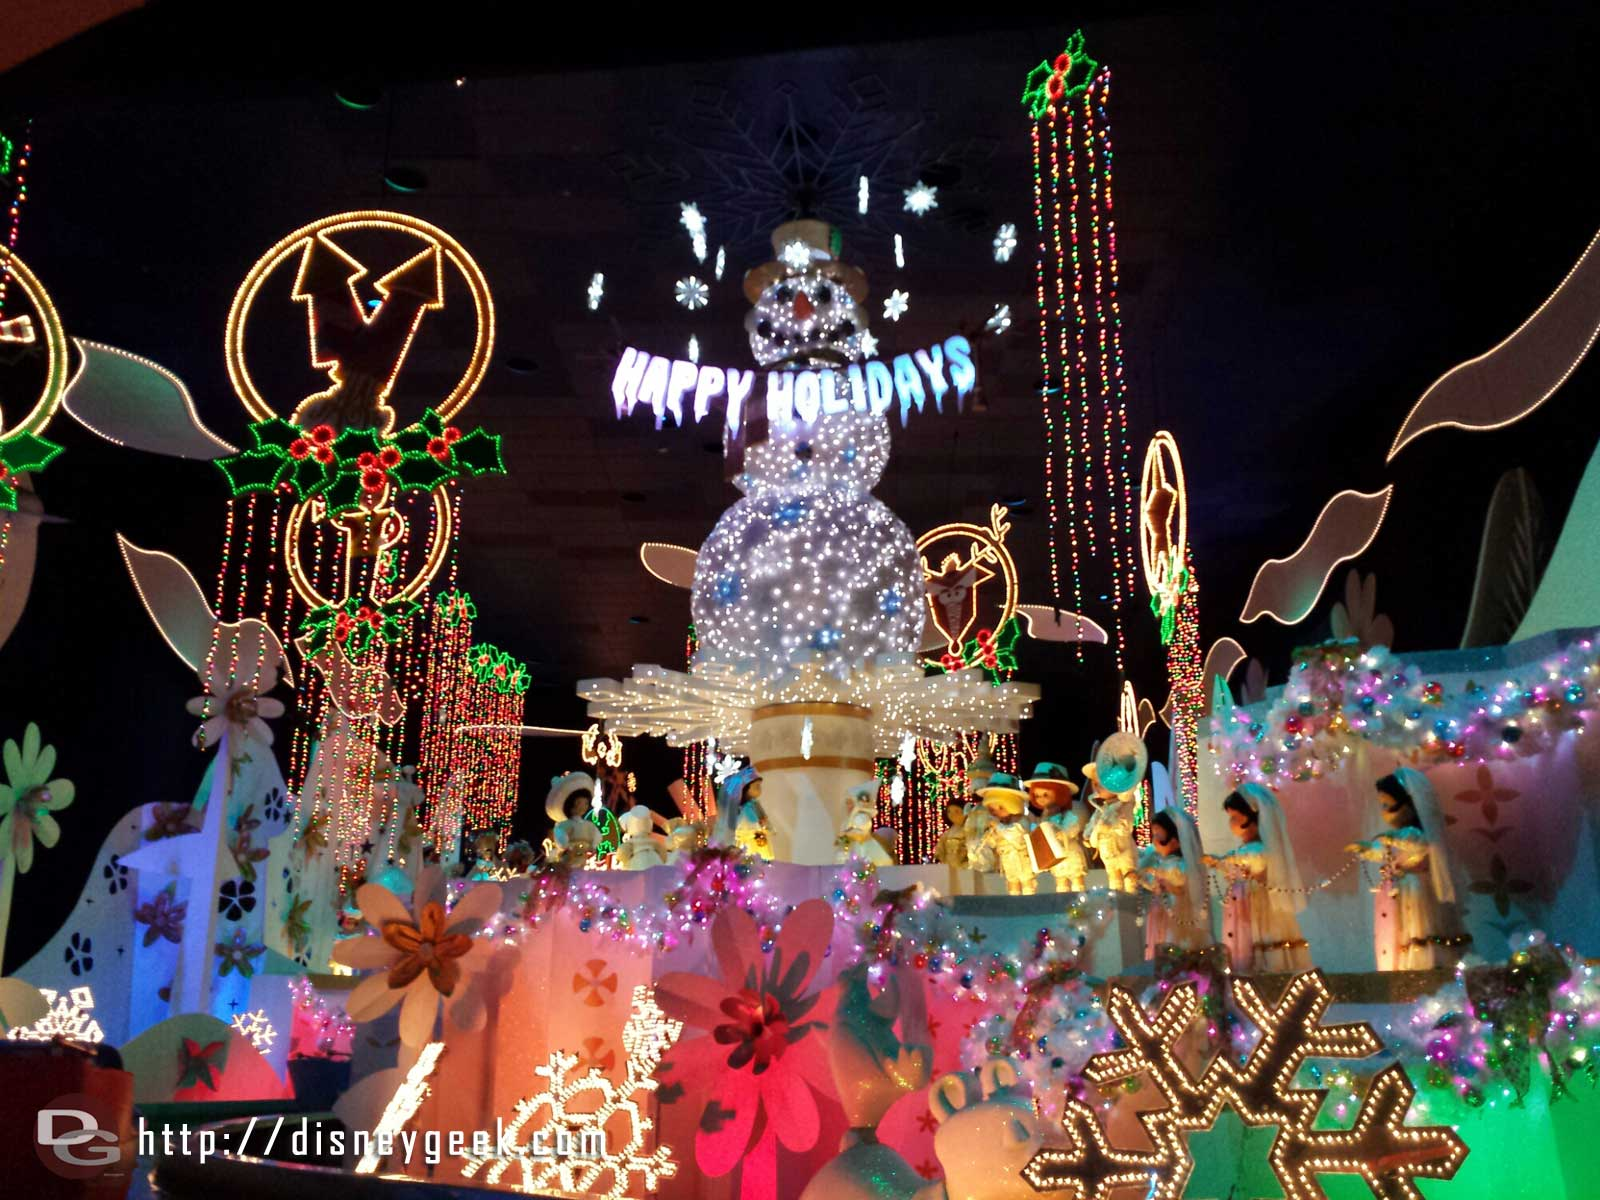 One last cruise on it's a Small World Holiday it closes Sunday #Disneyland